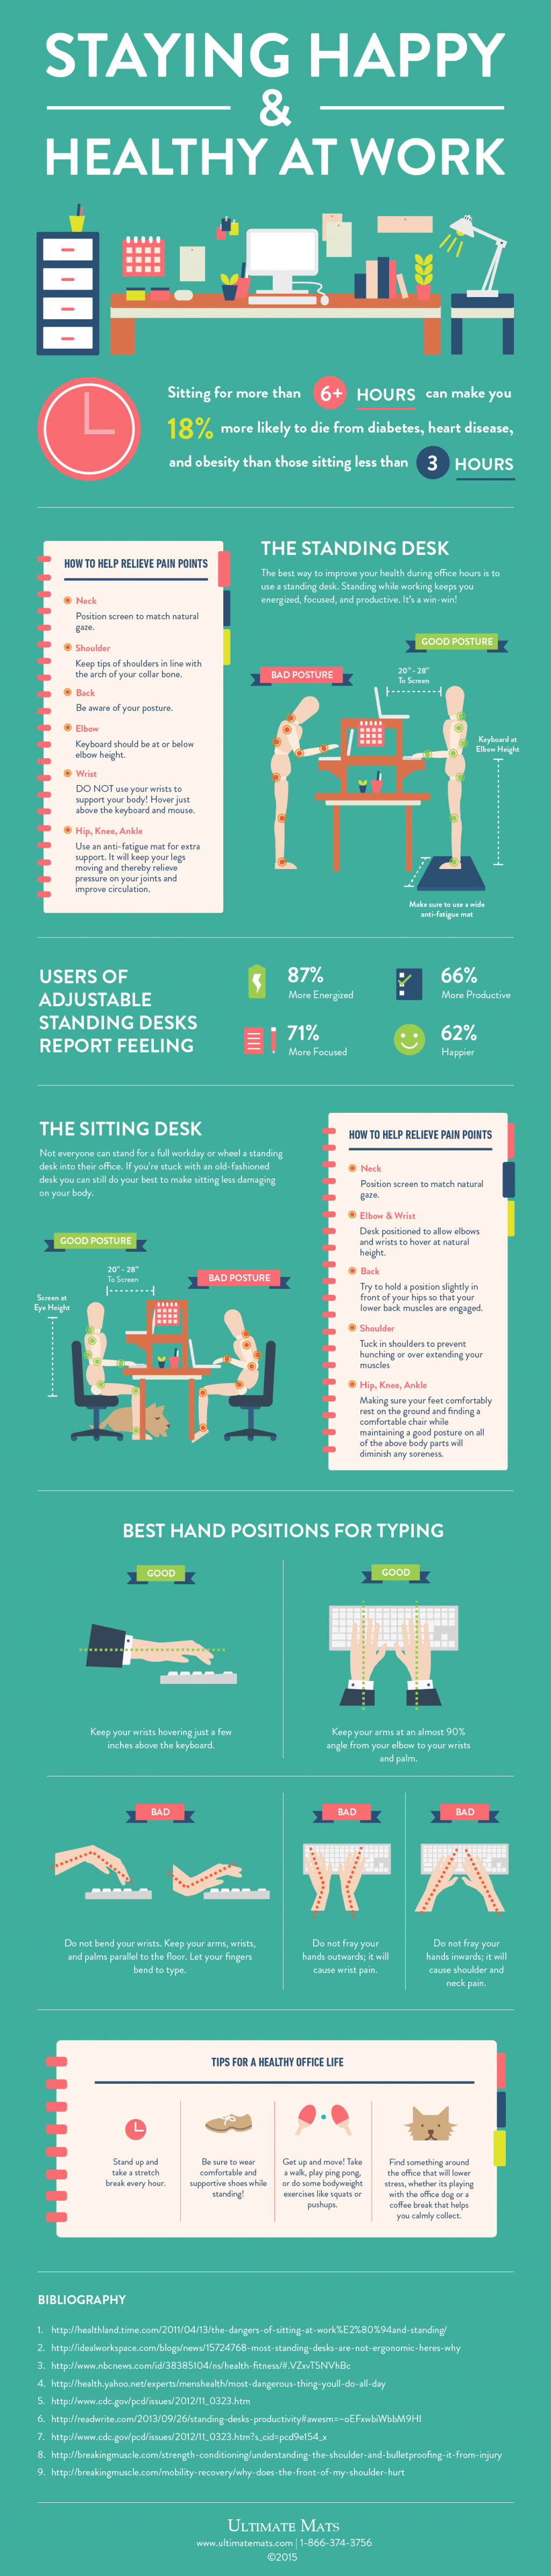 Sort your workplace out - better posture means better working